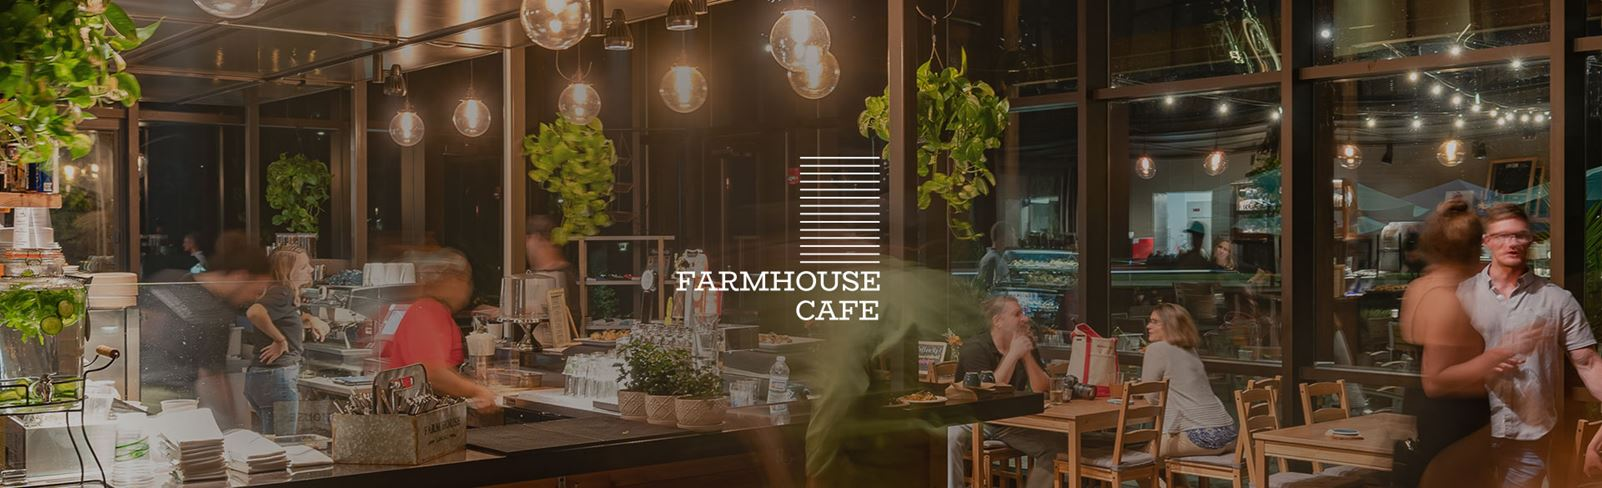 FarmhouseCafe_header_desktop_1920x585.jpg